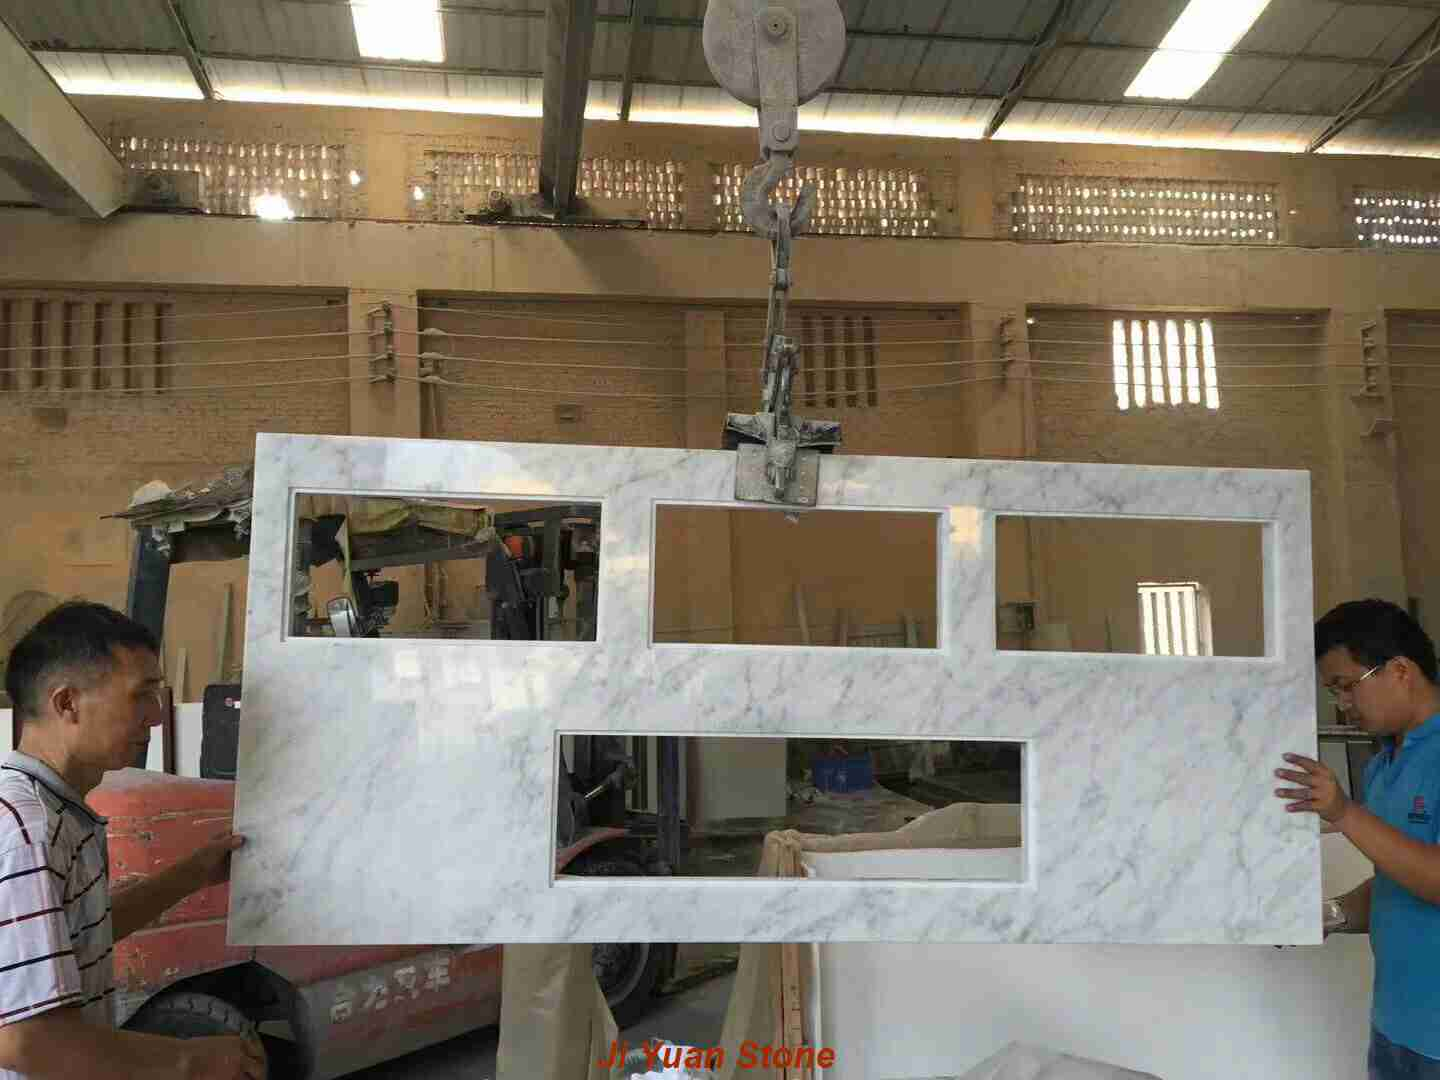 kitchen bench stone bench marble bench,kitchen island bench natural stone bench white kitchen bench,marble kitchen bench kitchen bench tops marble dining table with bench